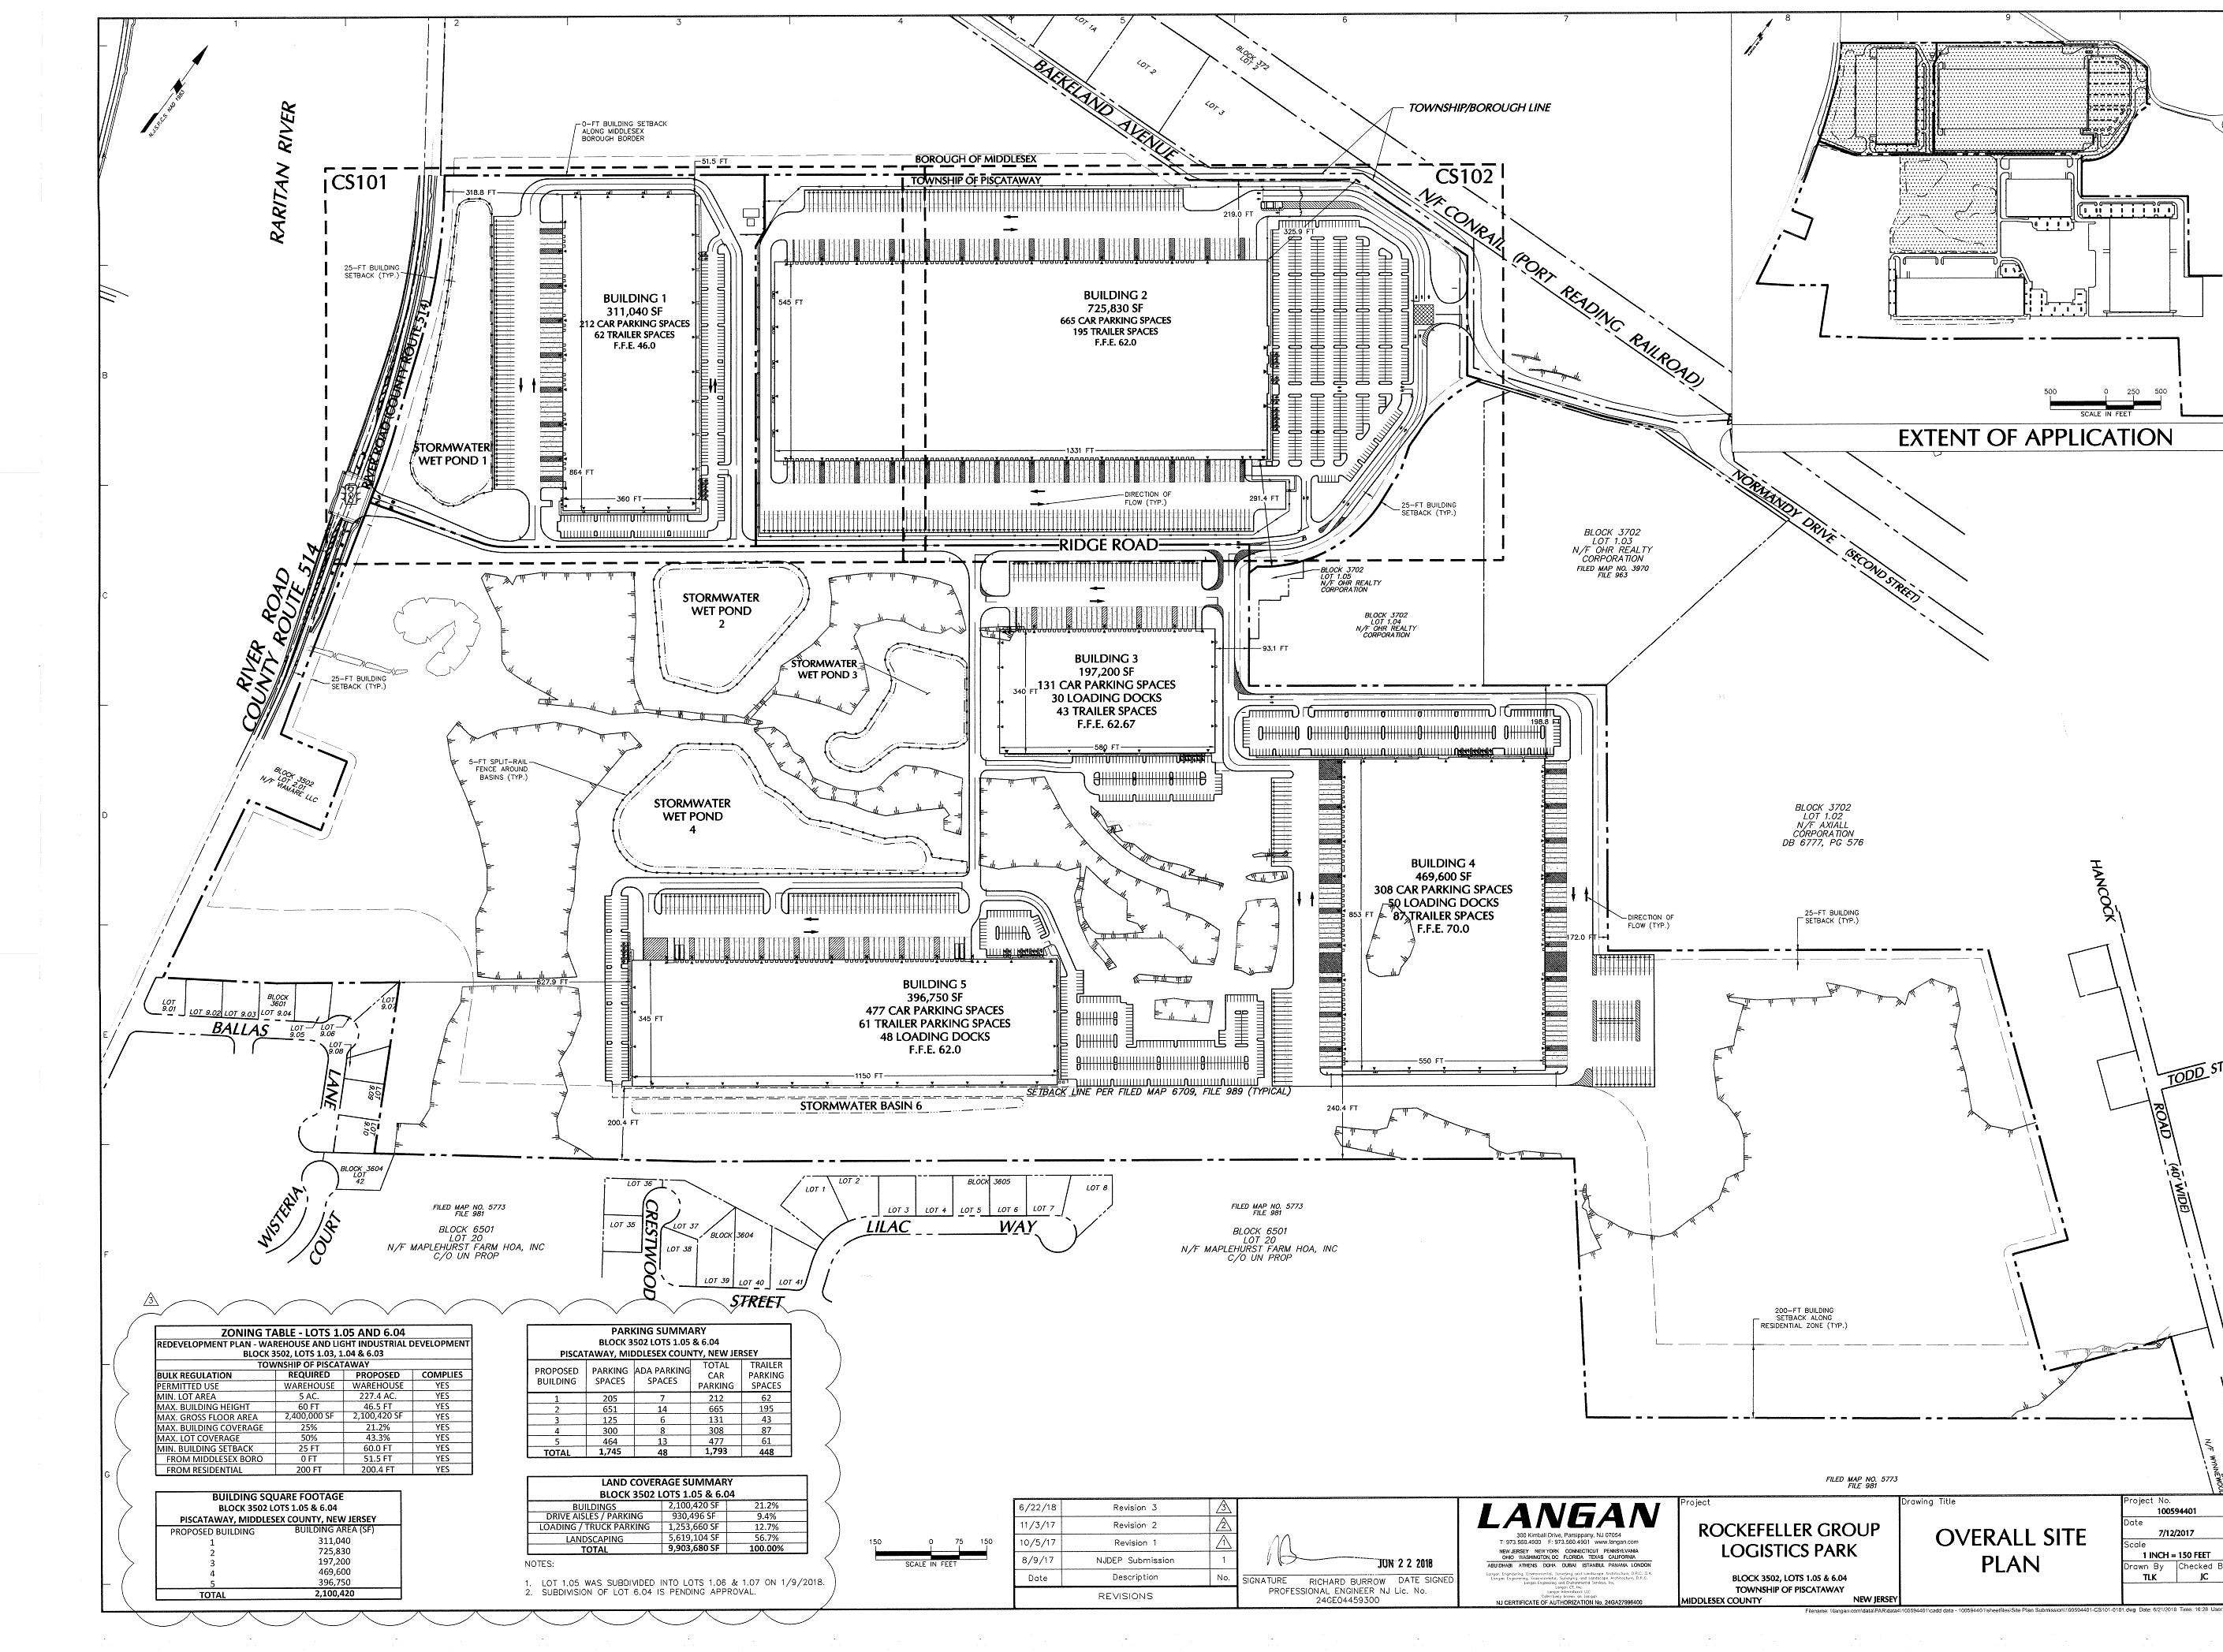 The site map for the Rockefeller Group Logistic Center on Baekeland Avenue and River Road. Tenants include Best Buy, Humanscale and Fujitsu and will include KISS cosmetics, SHI International Corp. and more to be announced.